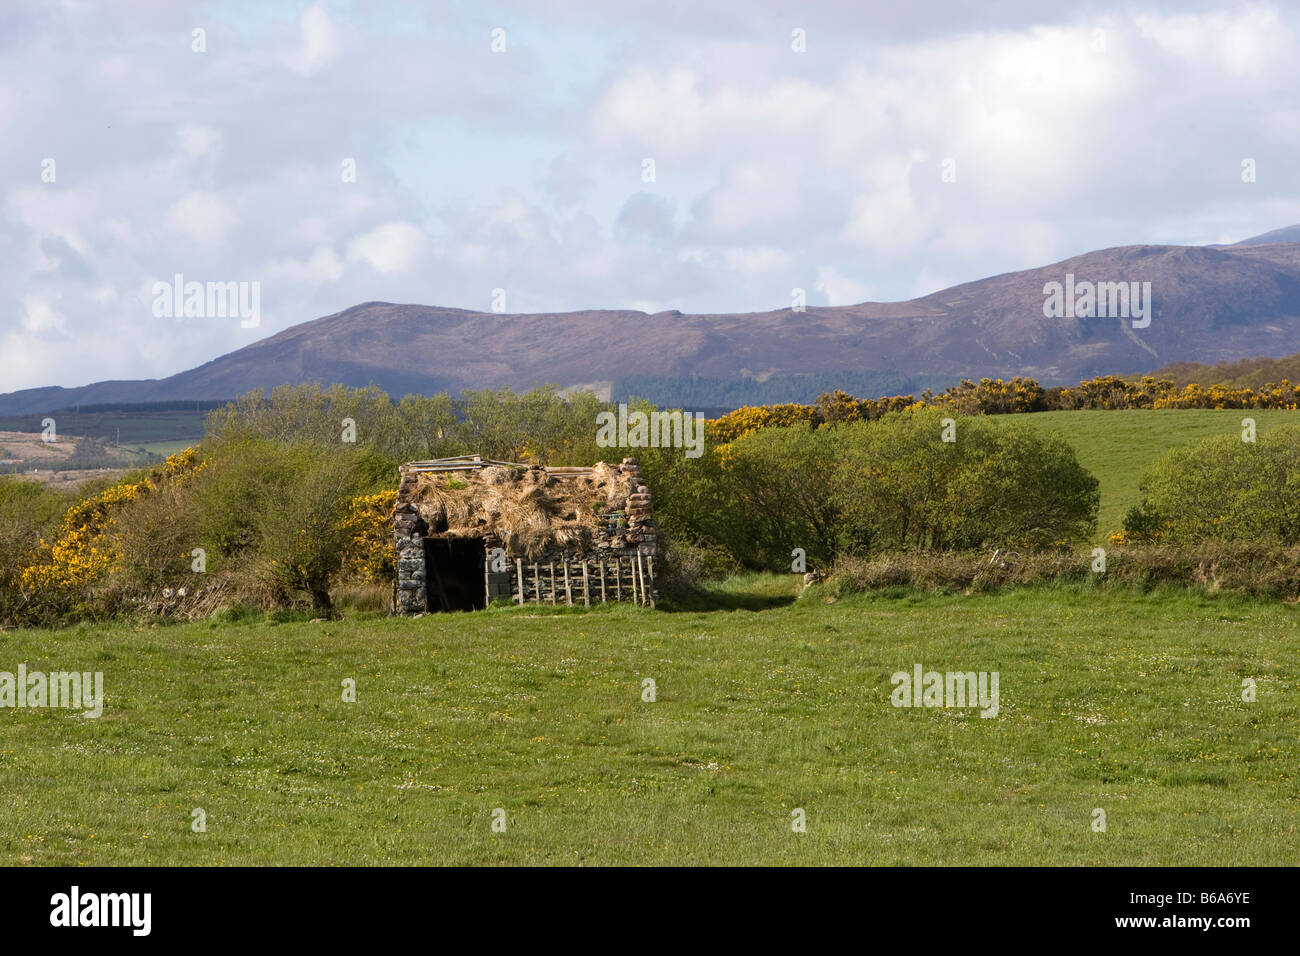 Derelict hut in a field in Co Mayo, Ireland - Stock Image